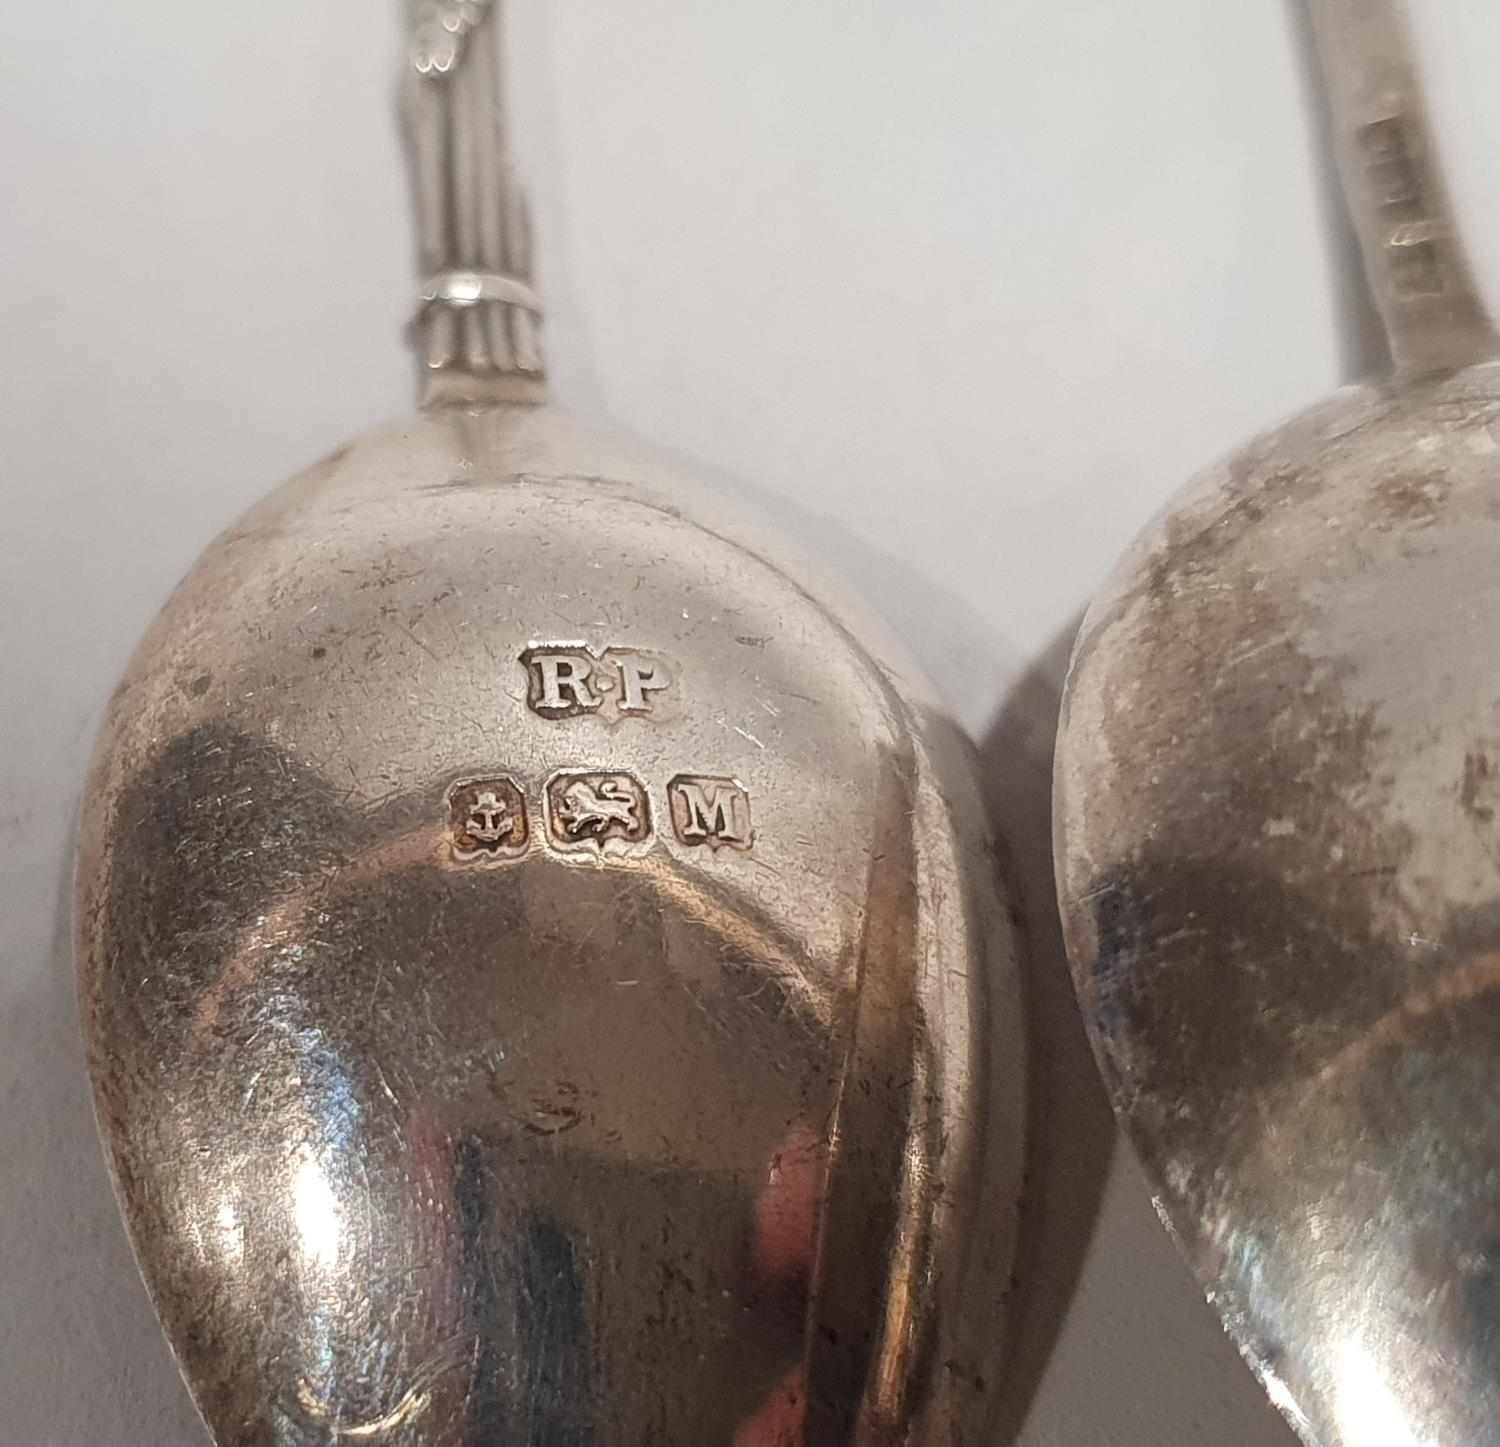 Collection of eight small silver spoons together with a silver rimmed crystal glass vase. - Image 5 of 8